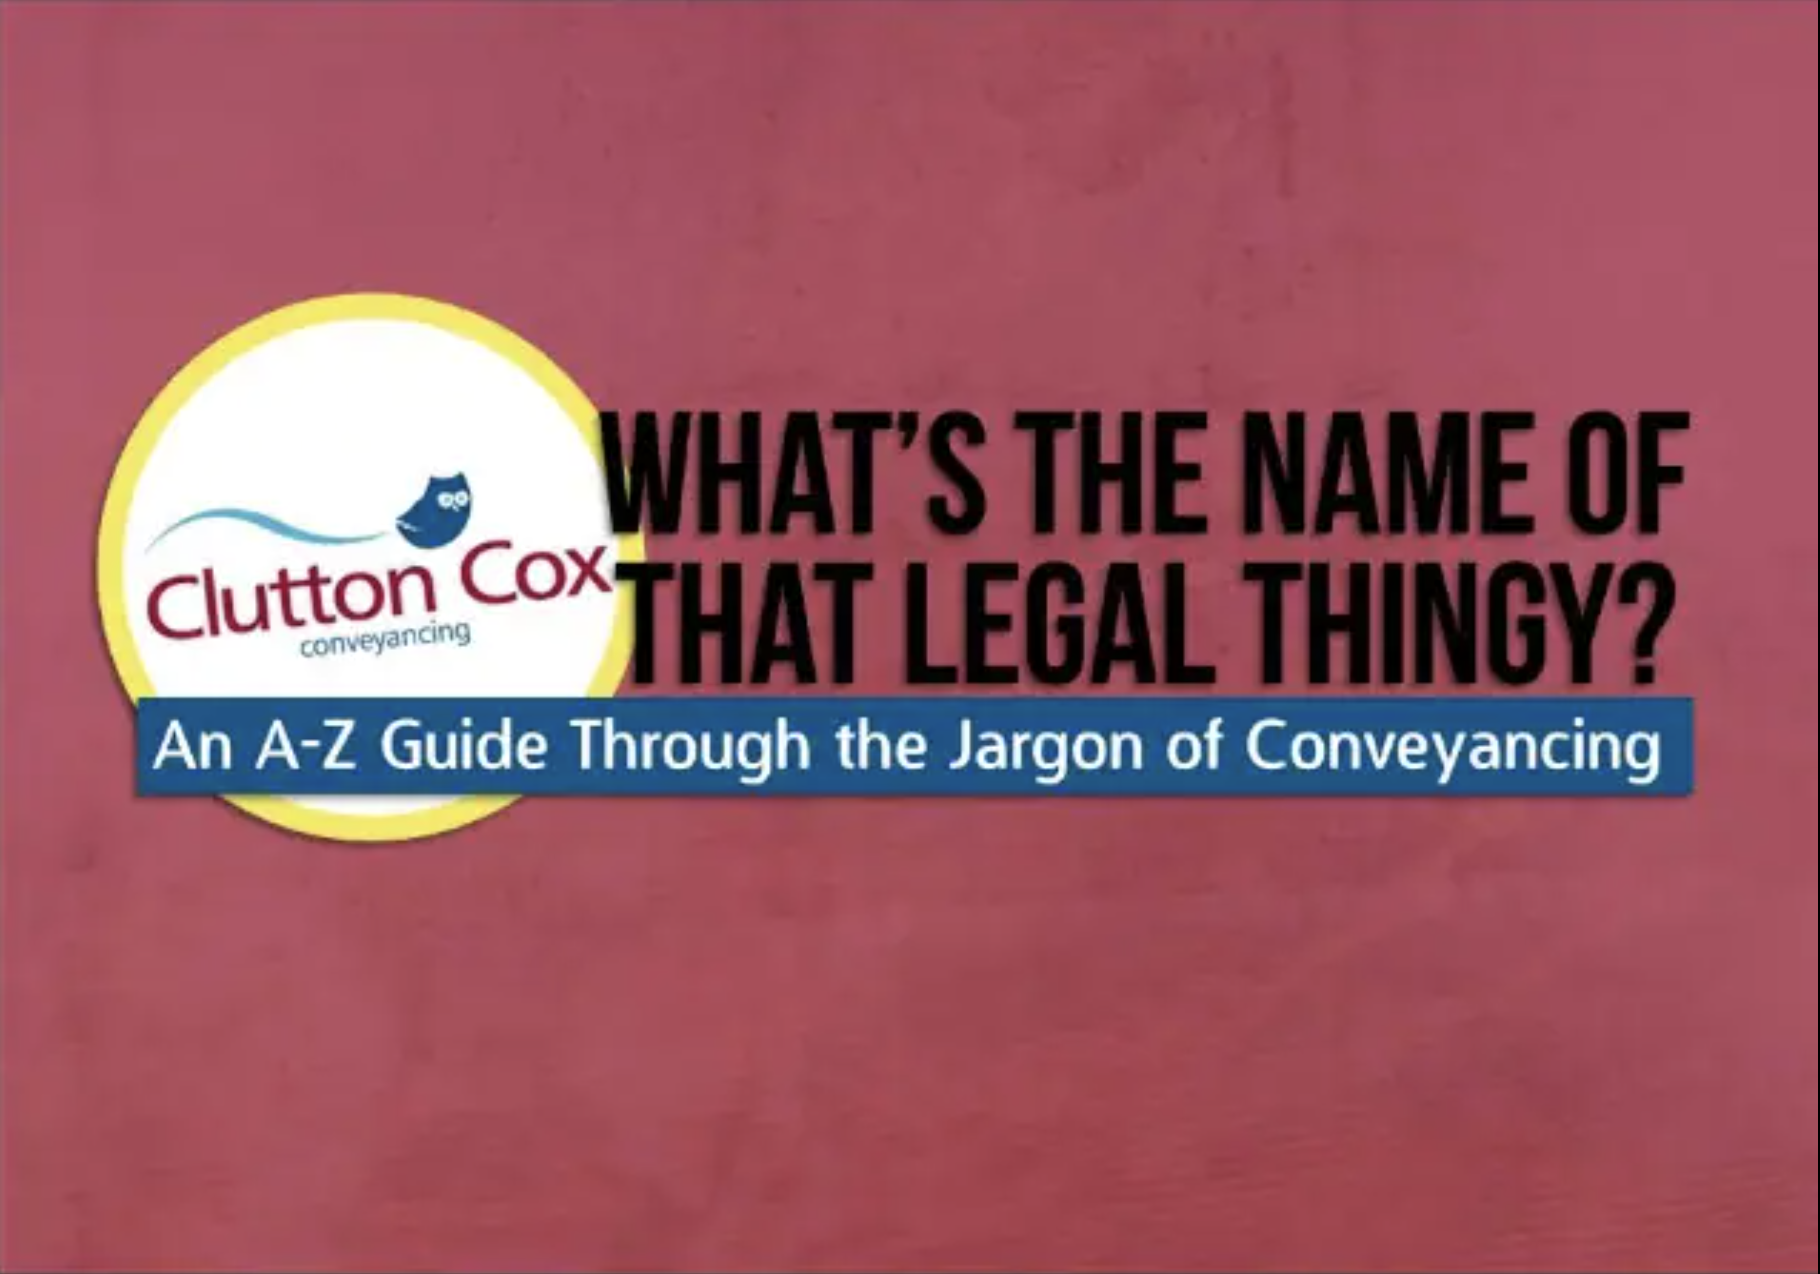 What's The Name of That Legal Thingy?